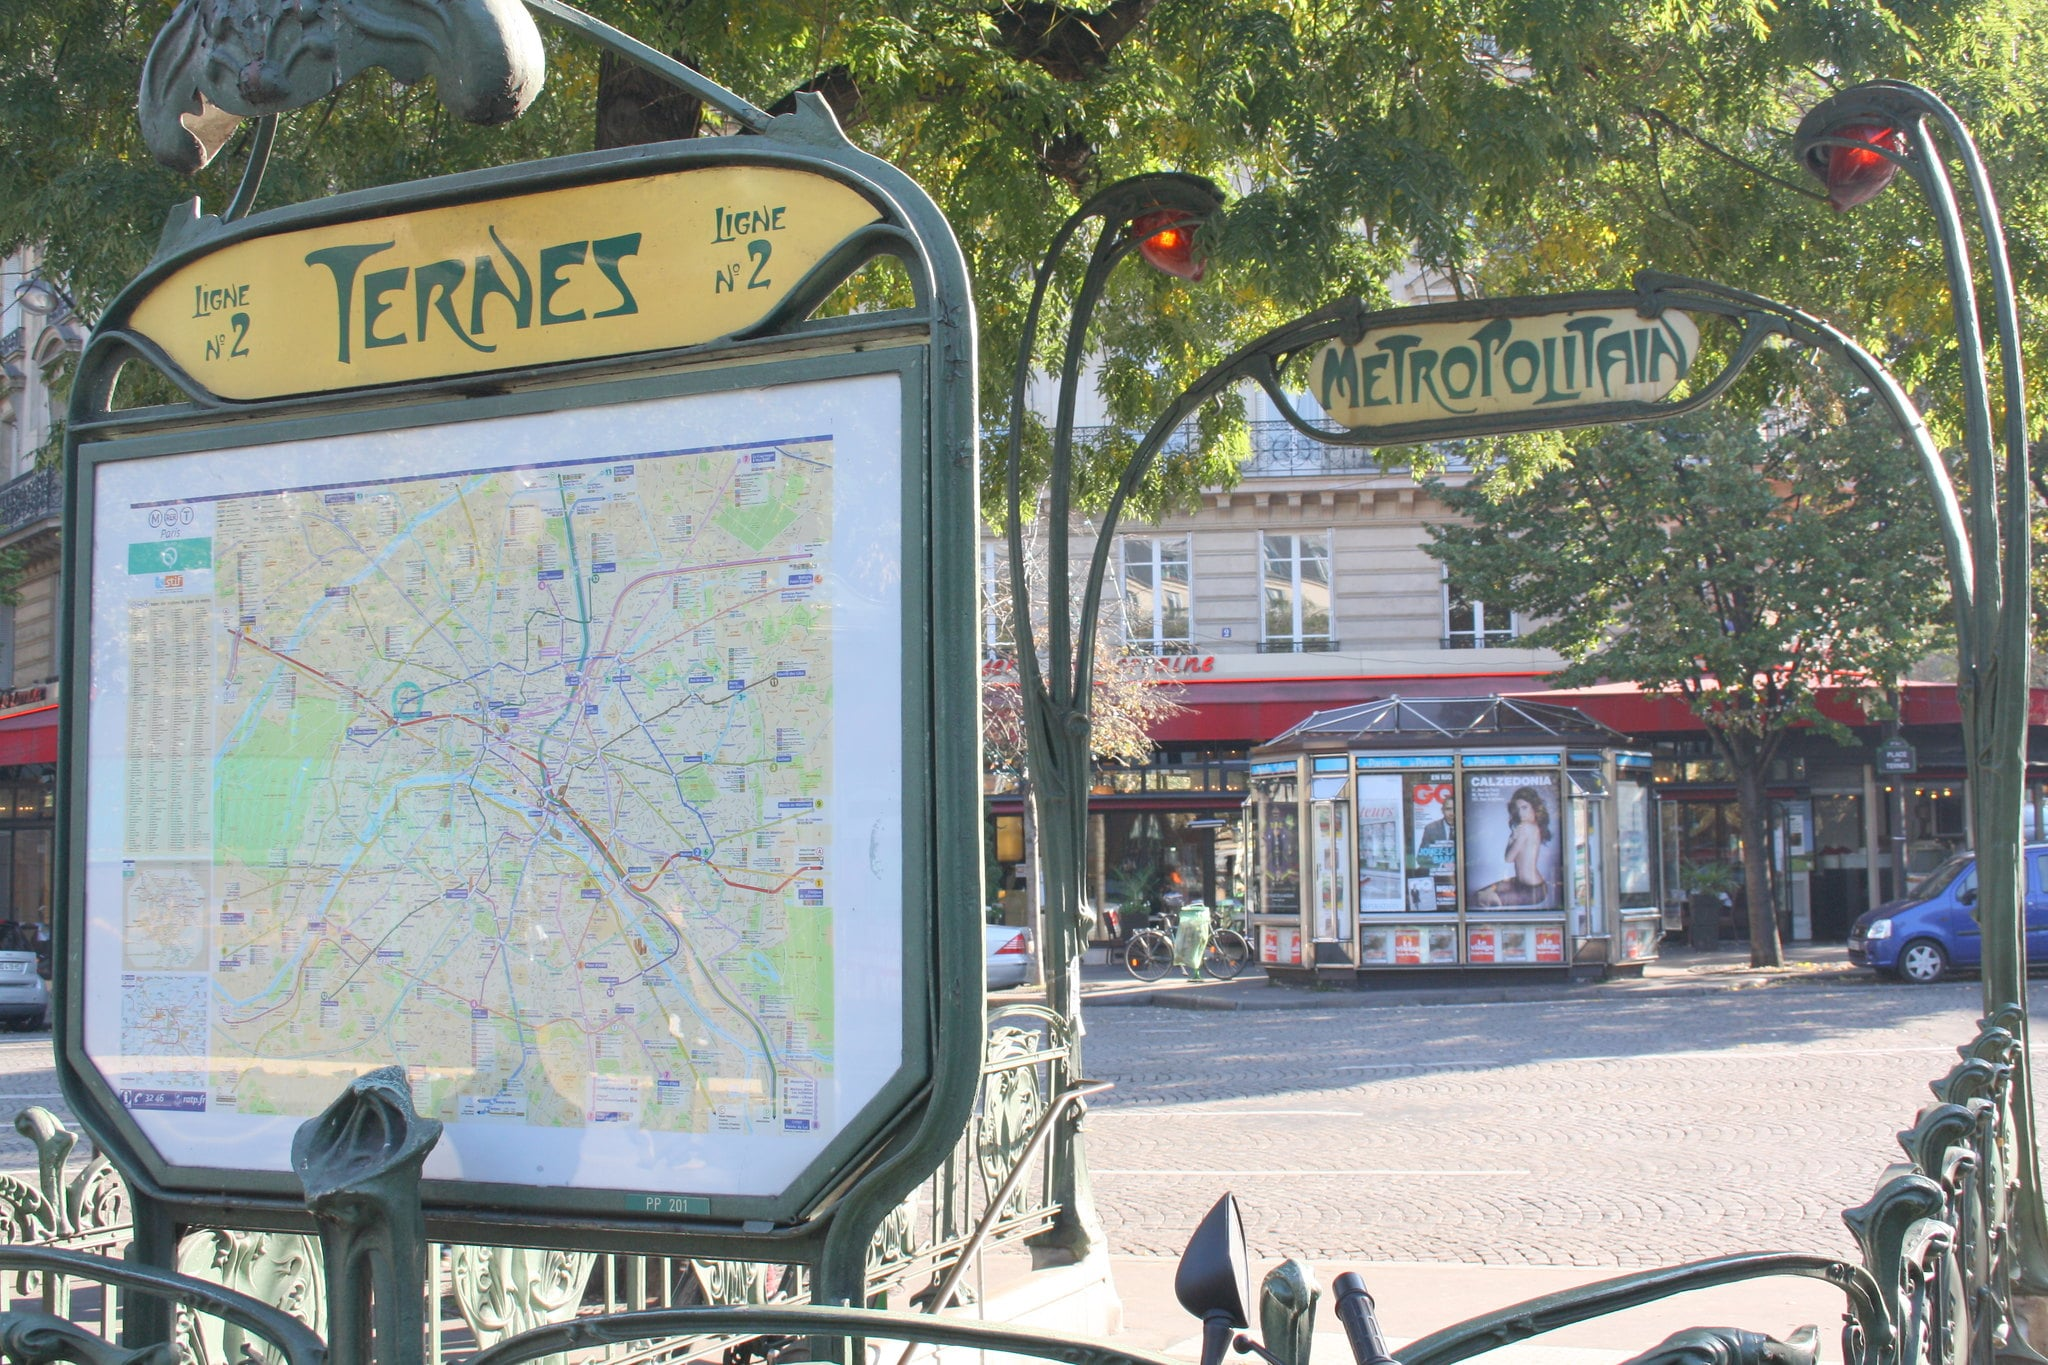 Is France Safe? Yes, as is the Parisian metro